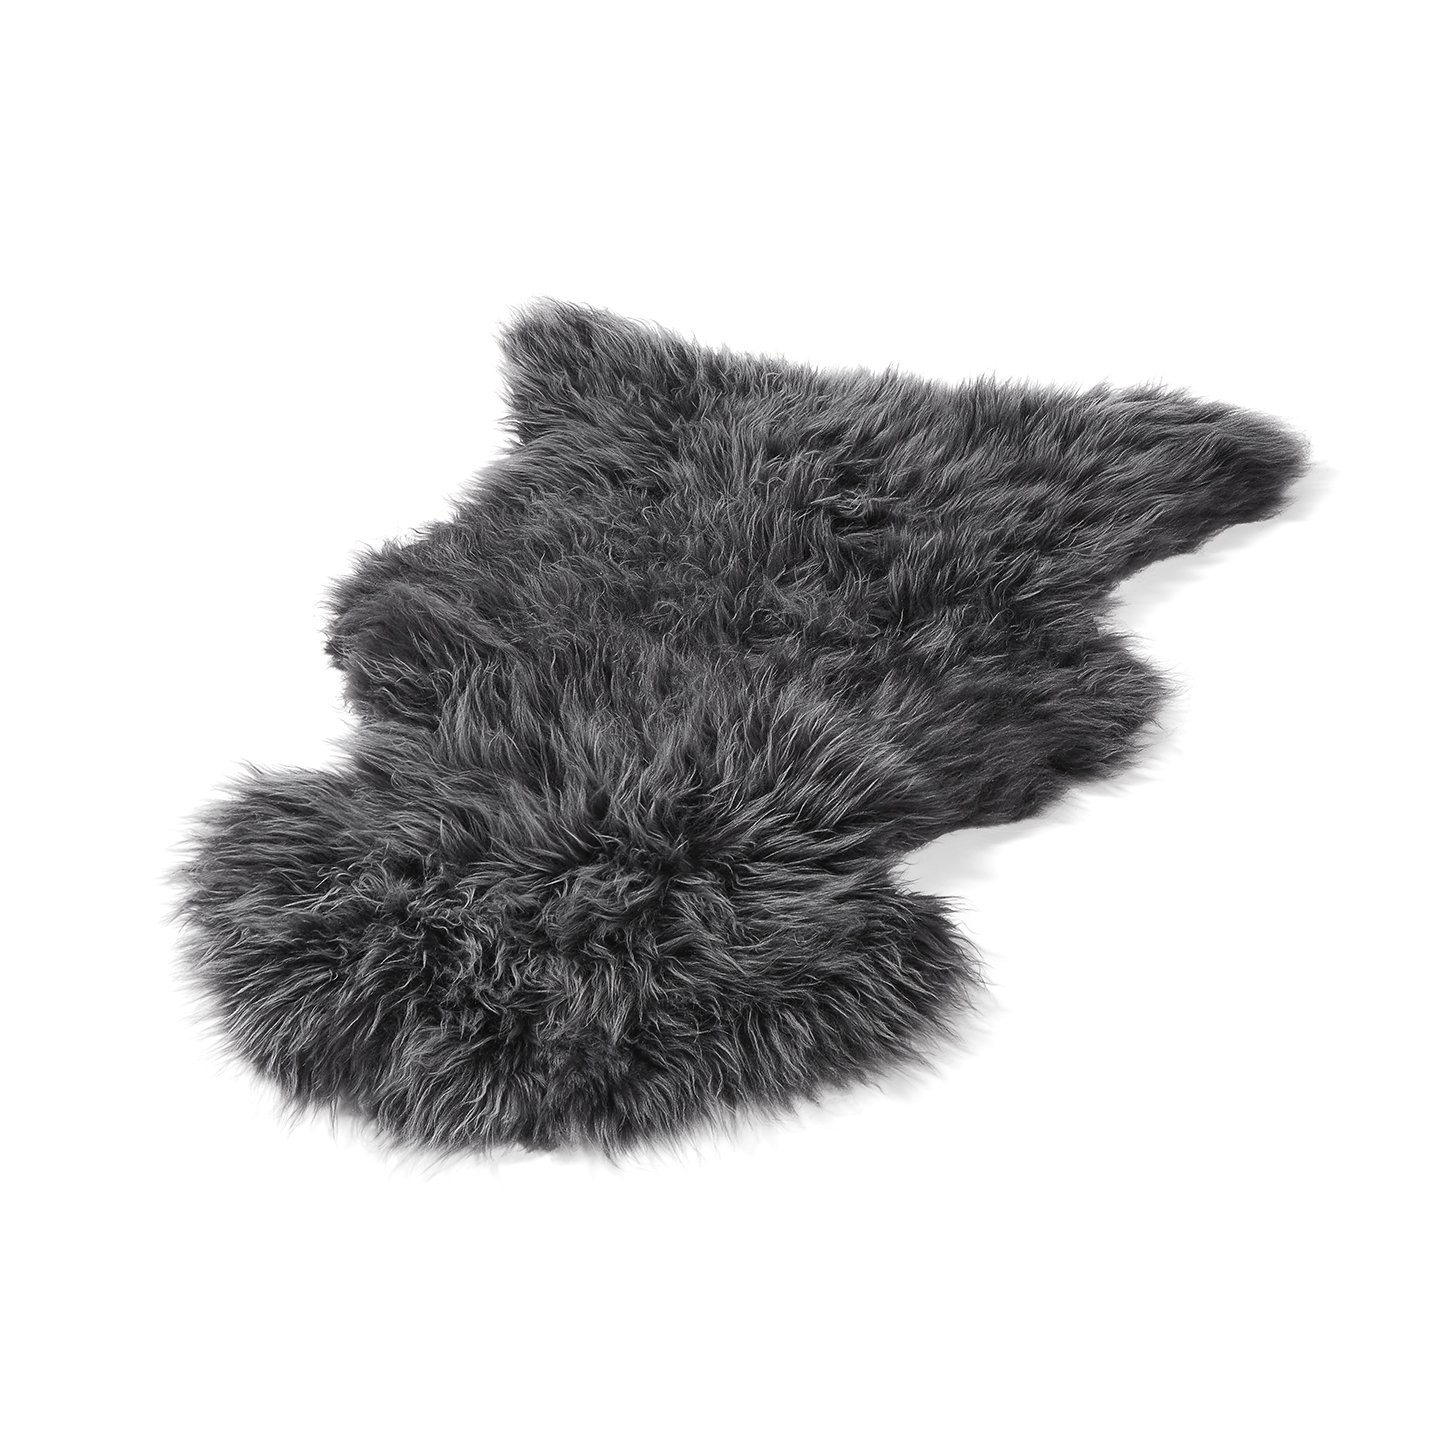 Sheepskin Rug - Authentic European Sheepskin Handmade 100% Natural Sheepskin Rug Area Rug Large Medium or Small Sizes RugMyBaby COMIN18JU091488